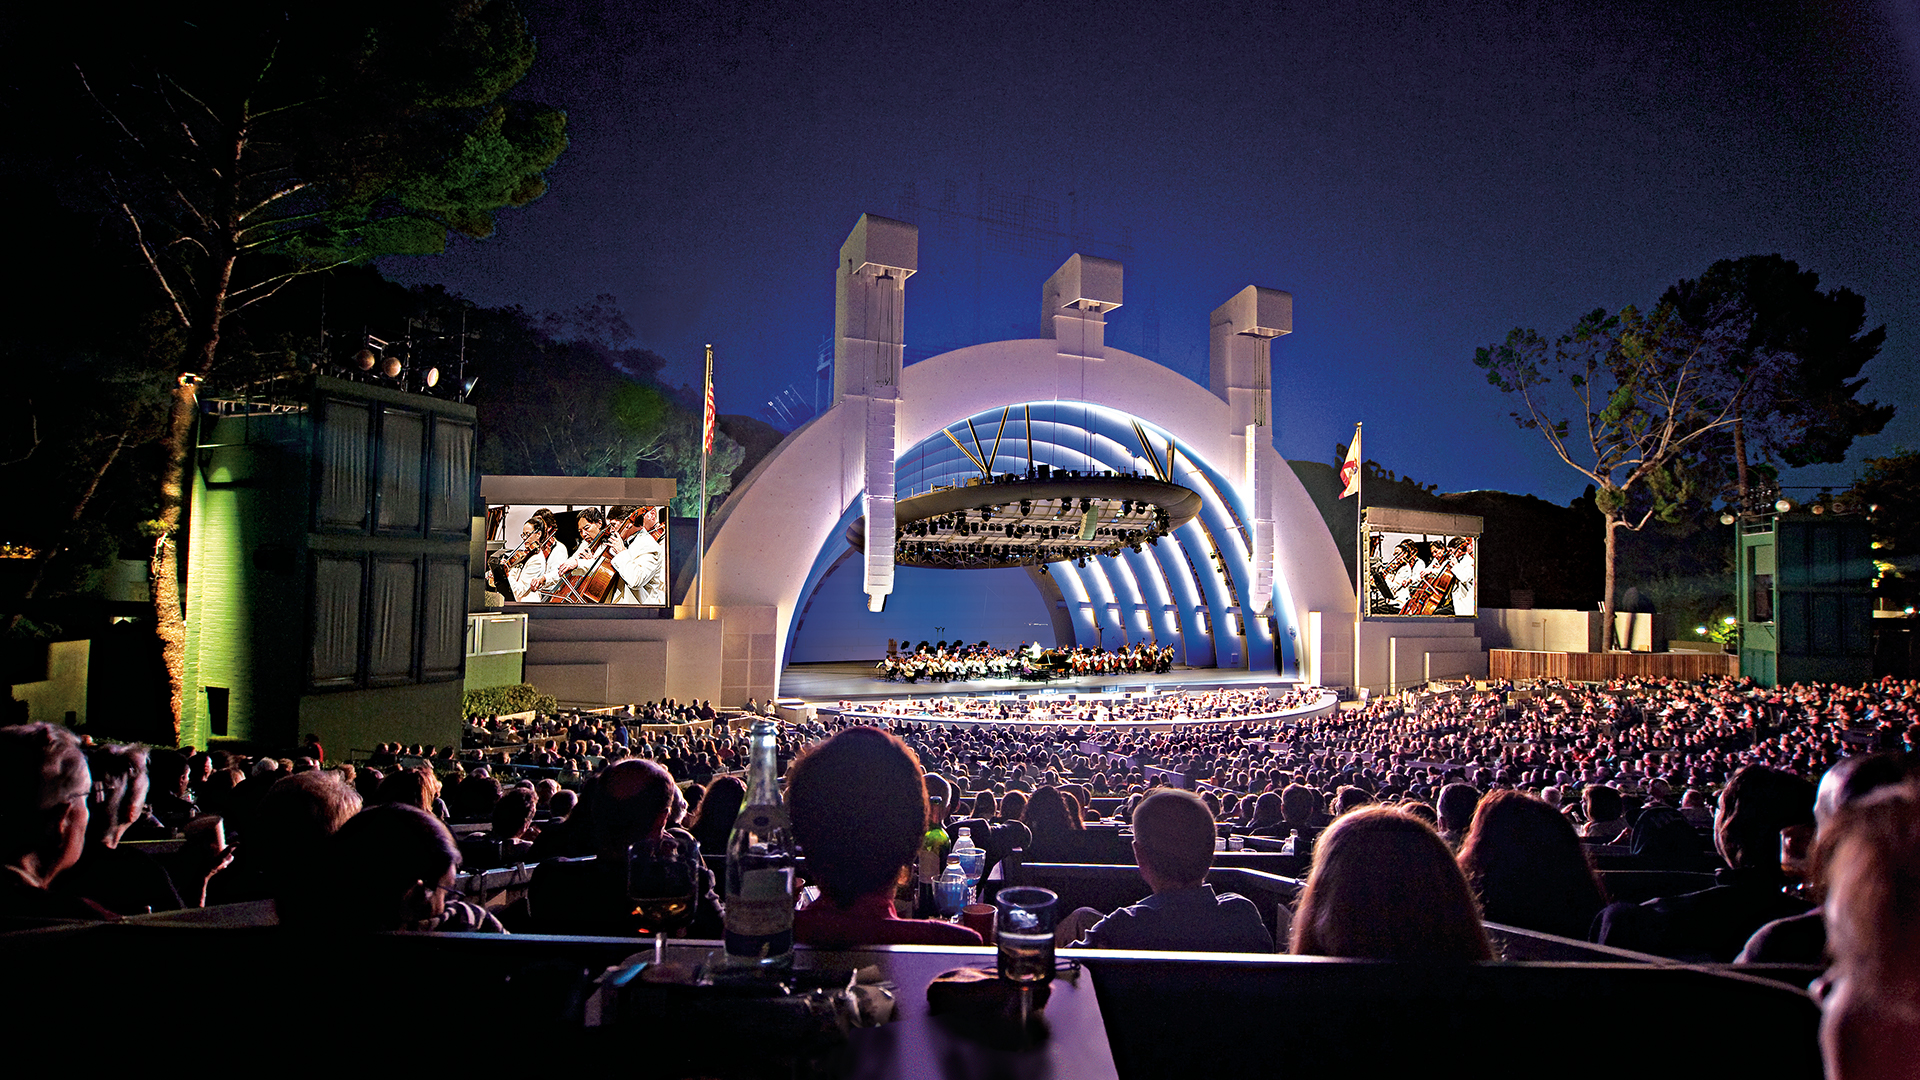 Summer performances at the Hollywood Bowl